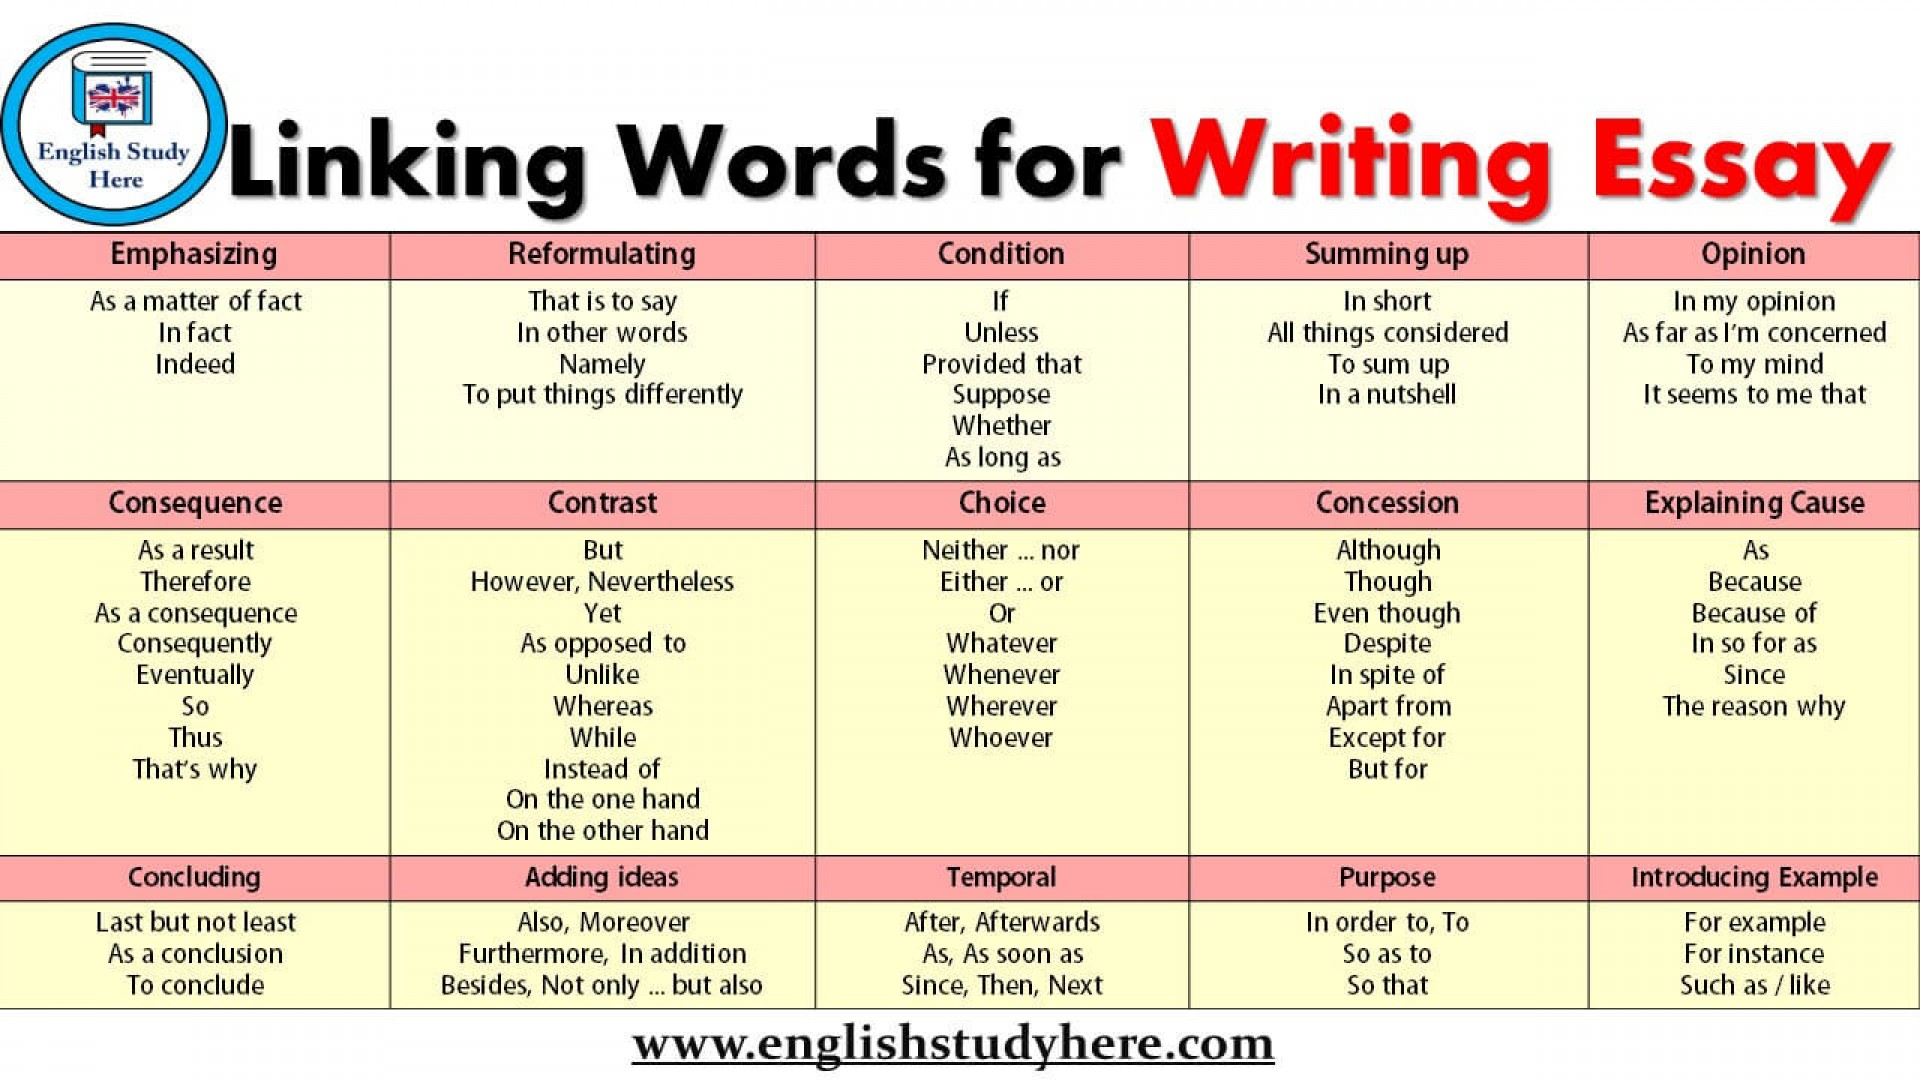 010 Essay Writing Linking Words Connecting For Essays